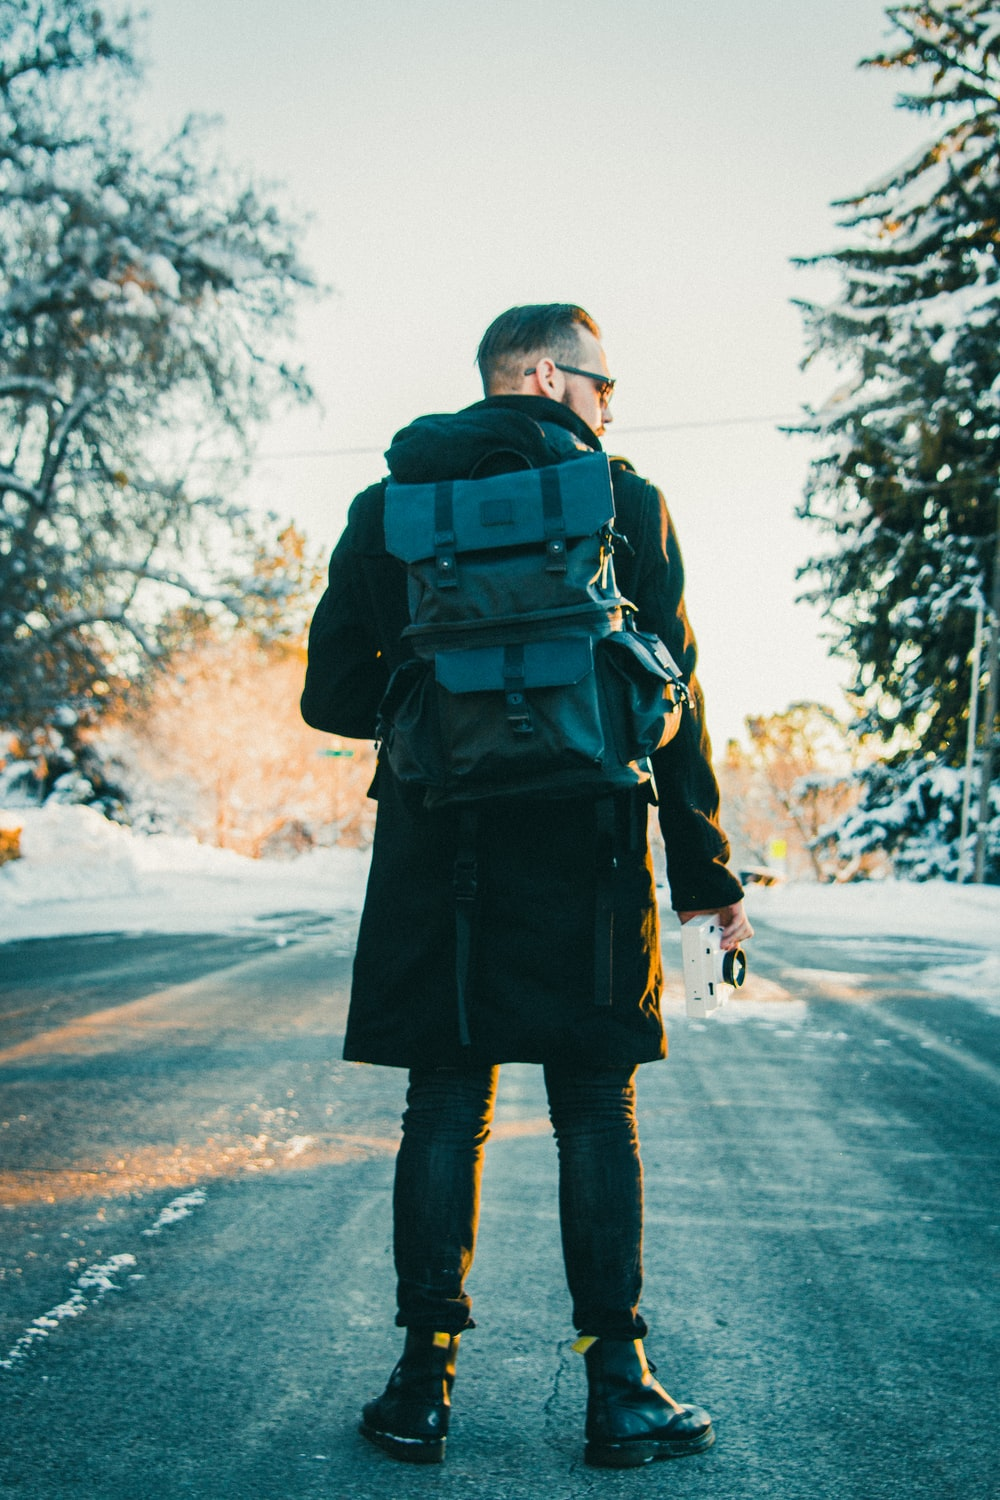 man wearing backpack in middle of the road